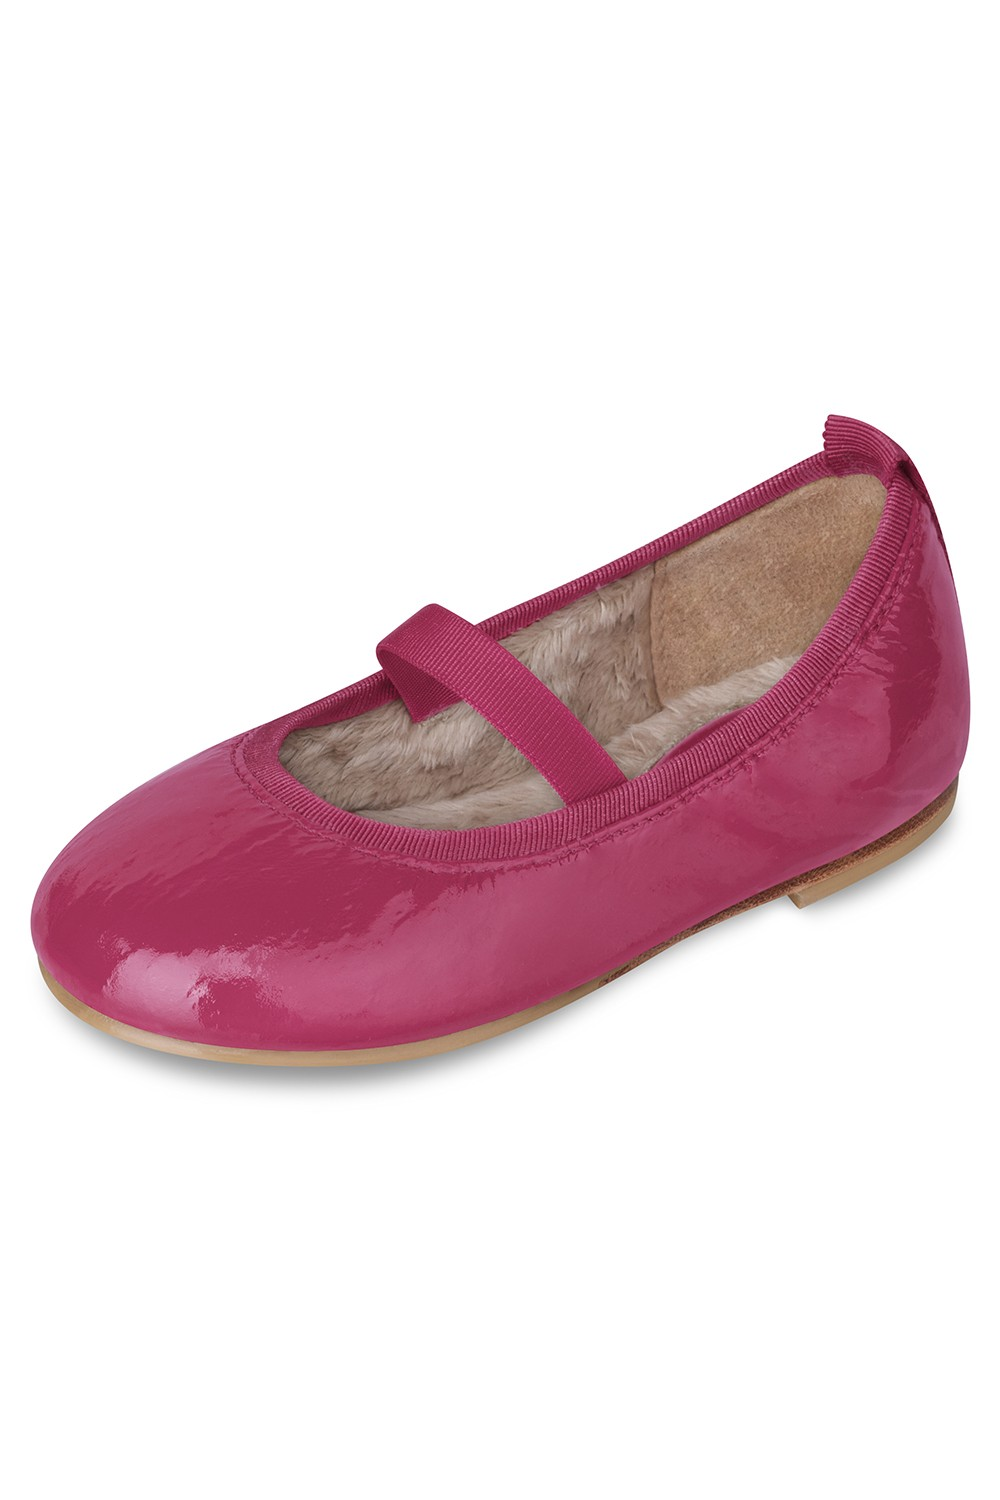 Isadora Toddler Ballet Flat Toddlers Fashion Shoes